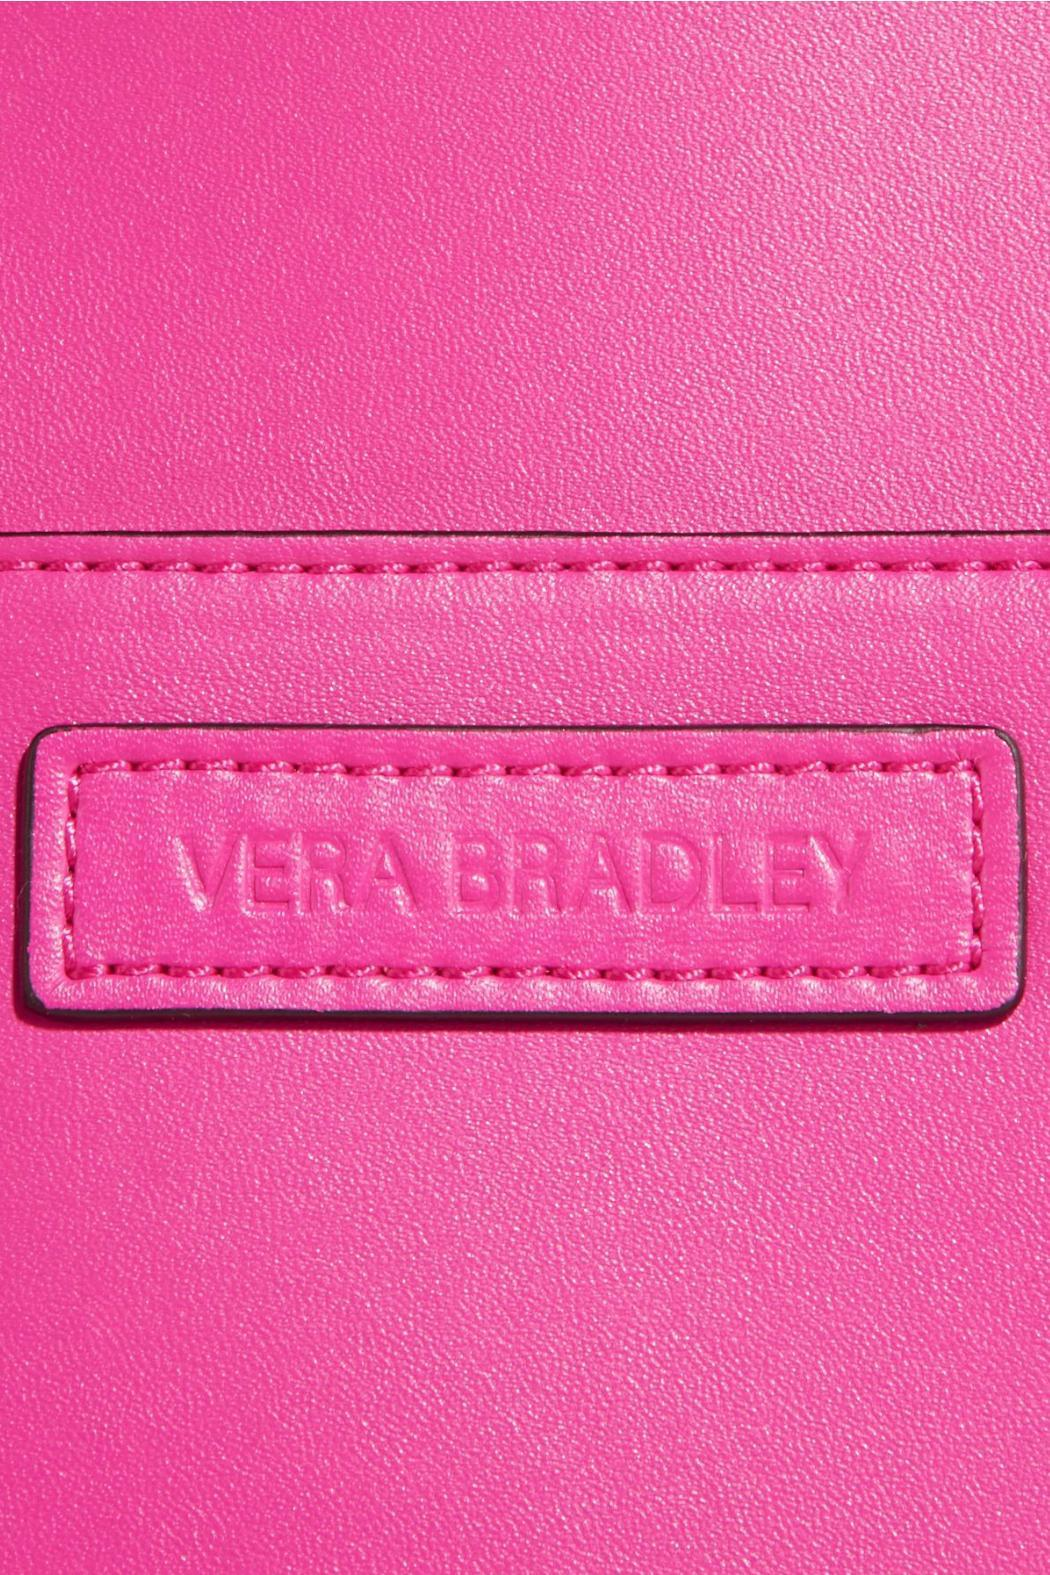 Vera Bradley Faux Leather Fuchsia Totes - Front Full Image